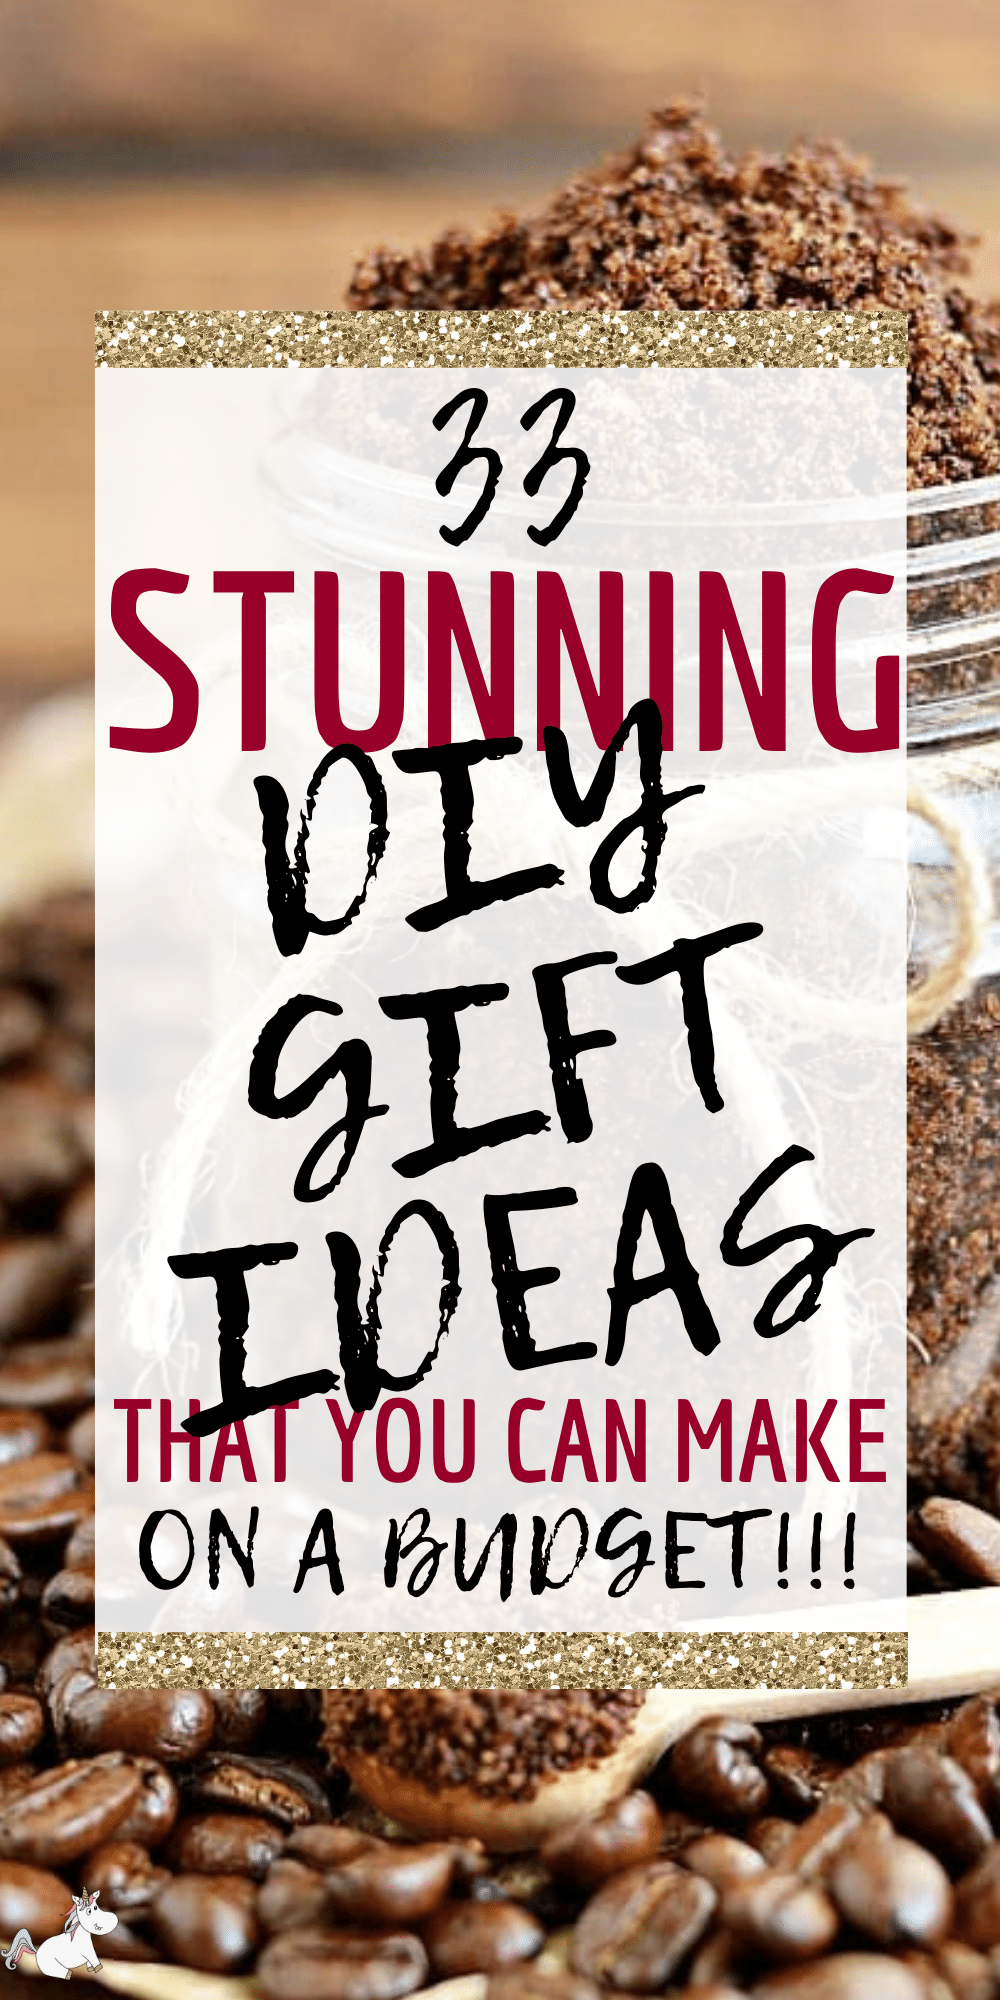 33 DIY Christmas Gifts That Your Friends & Family Will Actually Want To Get This Year!! This list of simple handmade gifts has something for everyone so you can keep to yout budget this Christmas & still make everyone happy with a meaningful gift you've made yourself | Via: https://themummyfront.com #diychristmasgifts #handmadegiftideas #homemadechristamsgifts #easydiygift #christmascrafts #themummyfront #diychristmas